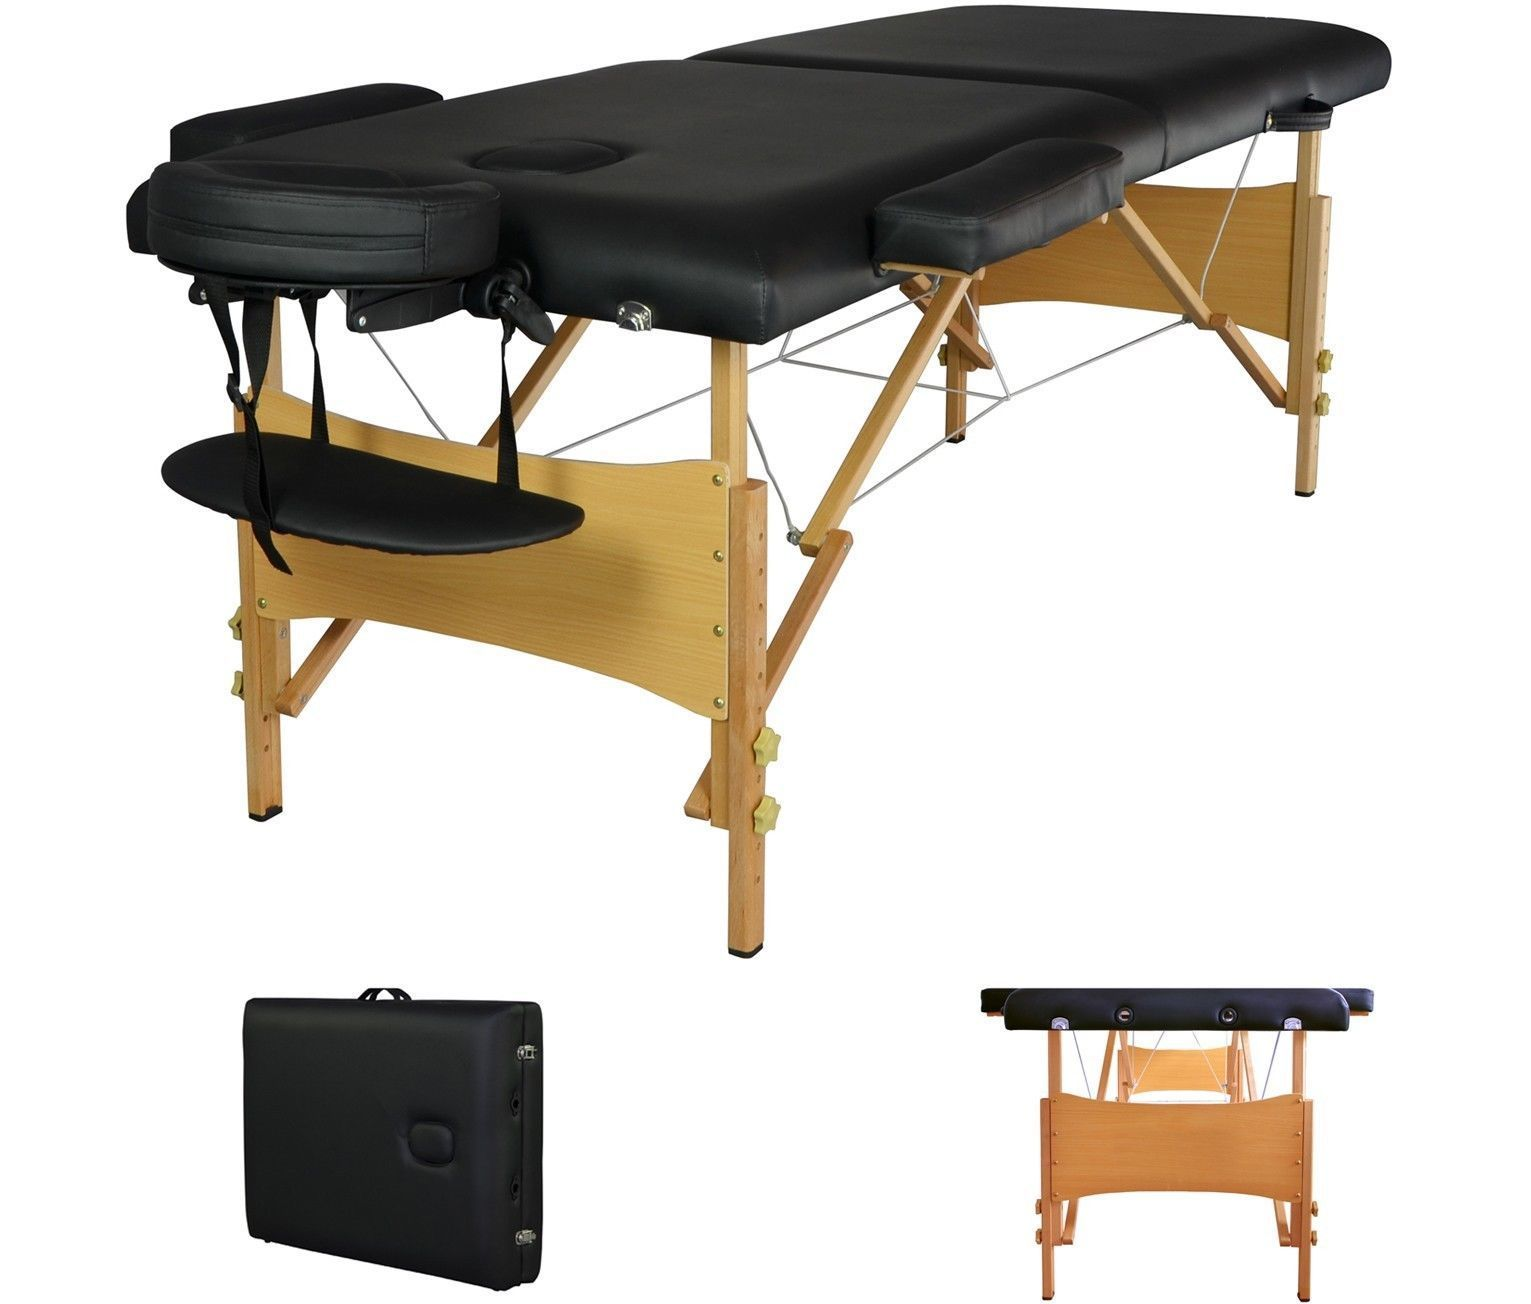 sunrise sale online tables table for electric acatalog massage uk couches